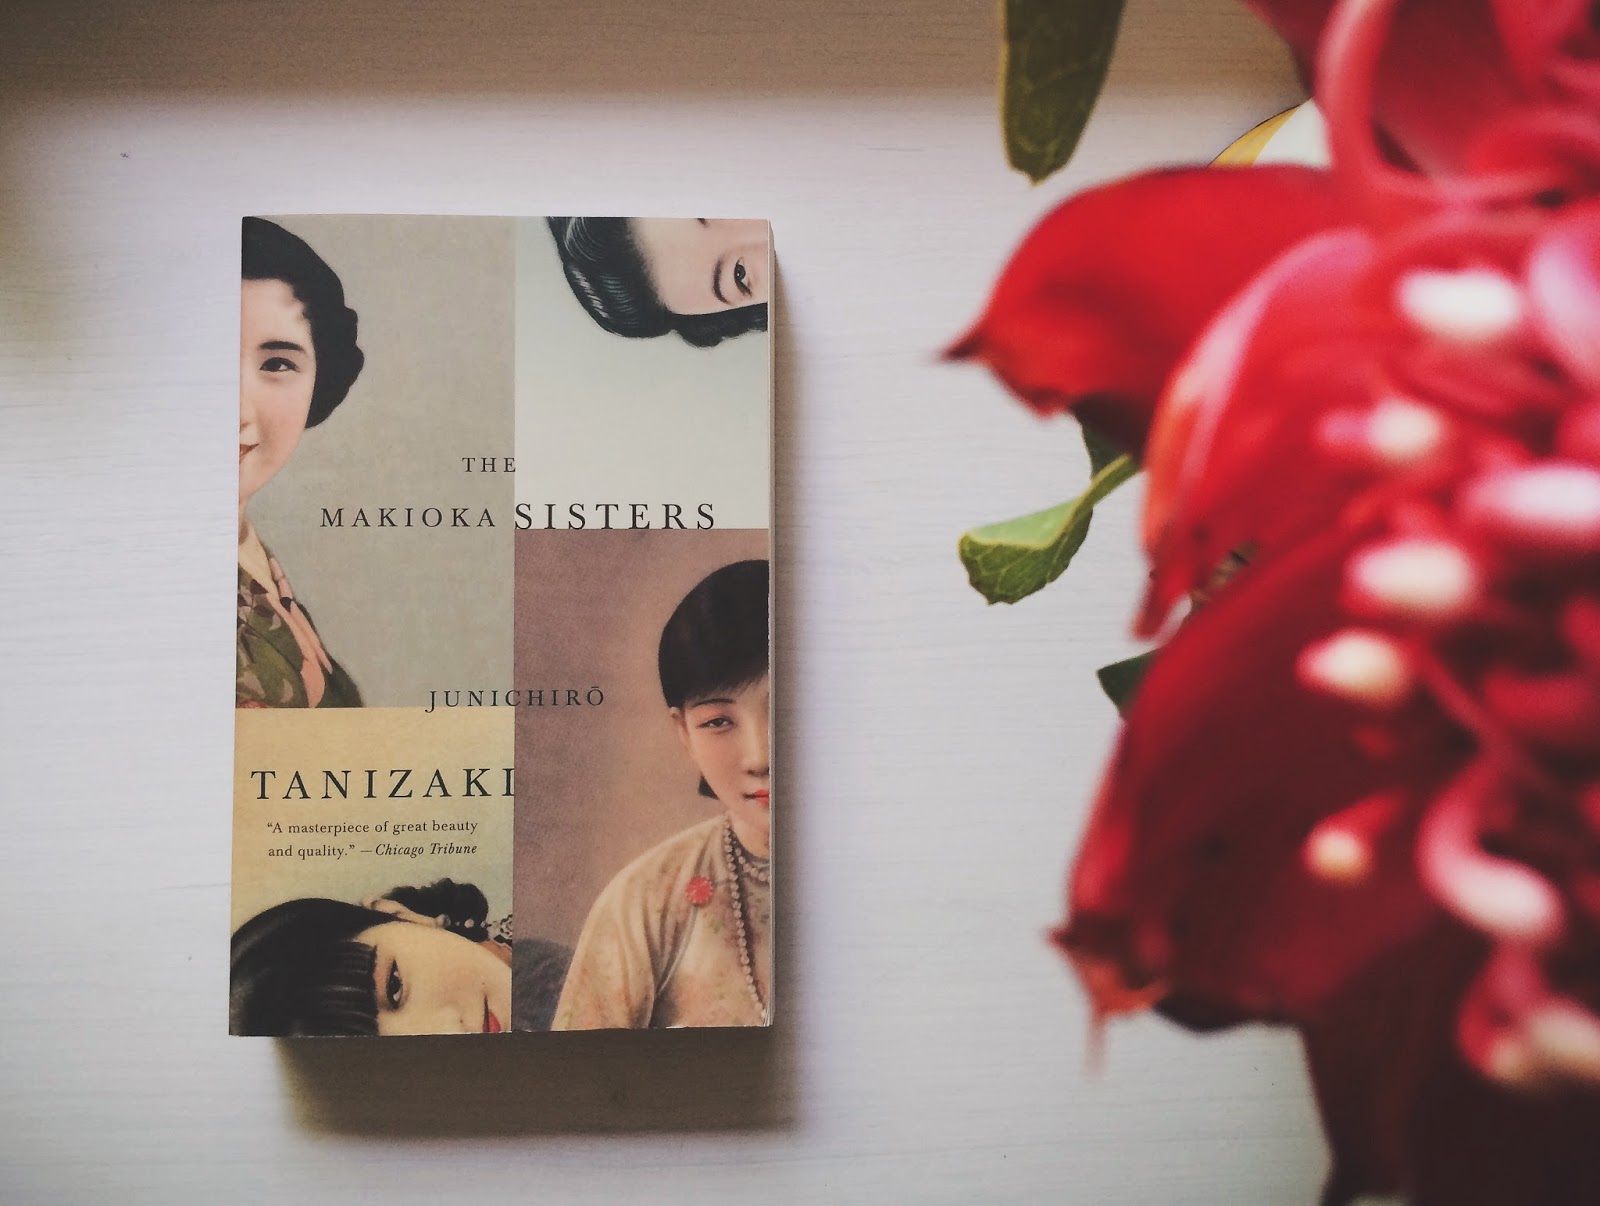 The Makioka Sisters Tanizaki Junichiro, Japanese Literature, Books, Book Haul